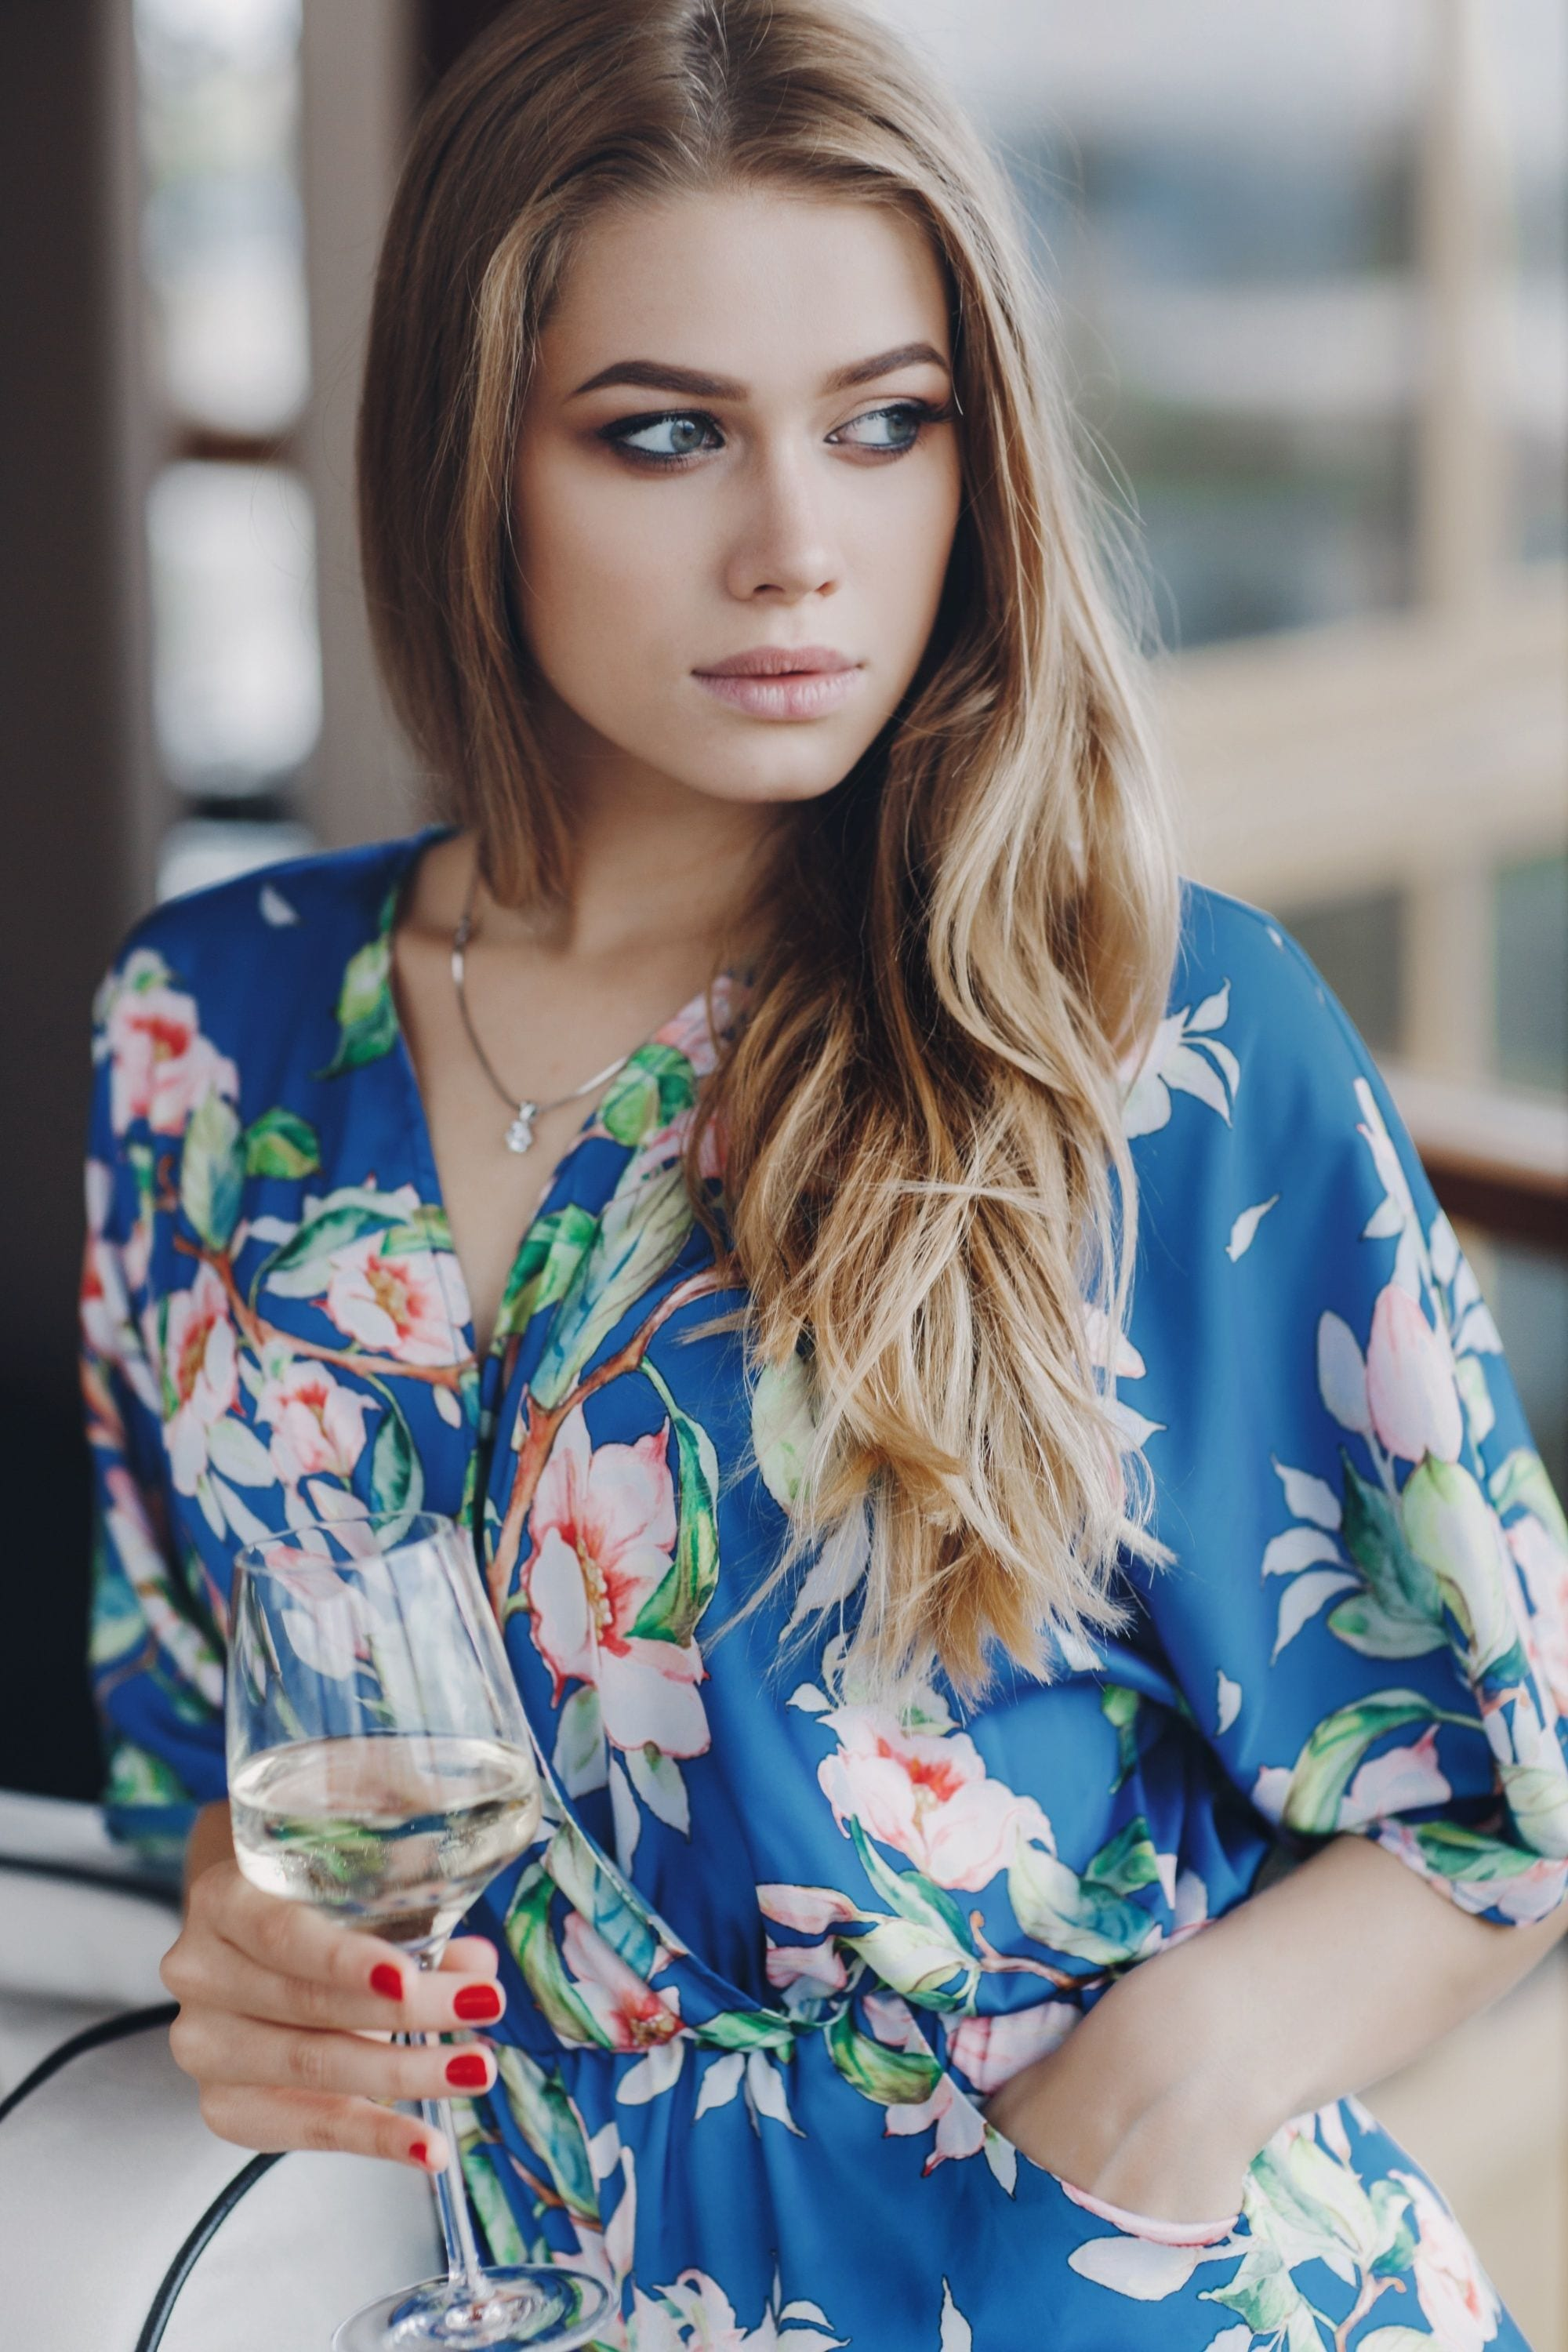 Ash hair color: Woman with long ash bronde hair wearing a blue floral dress